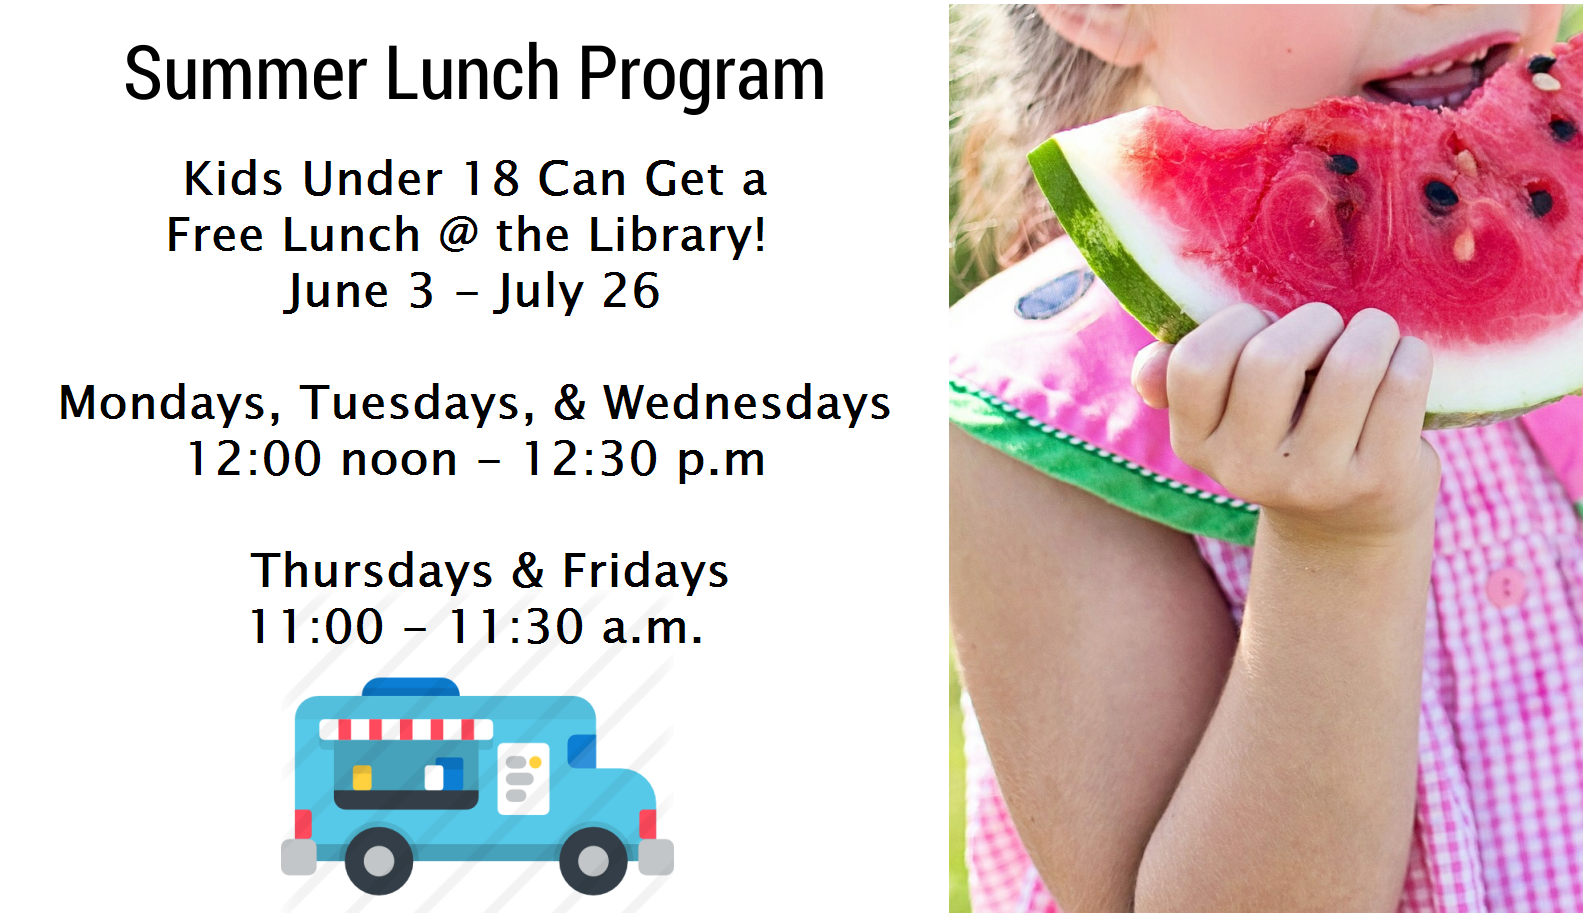 Free Summer Lunch program for kids under 18 from June 3 - July 26